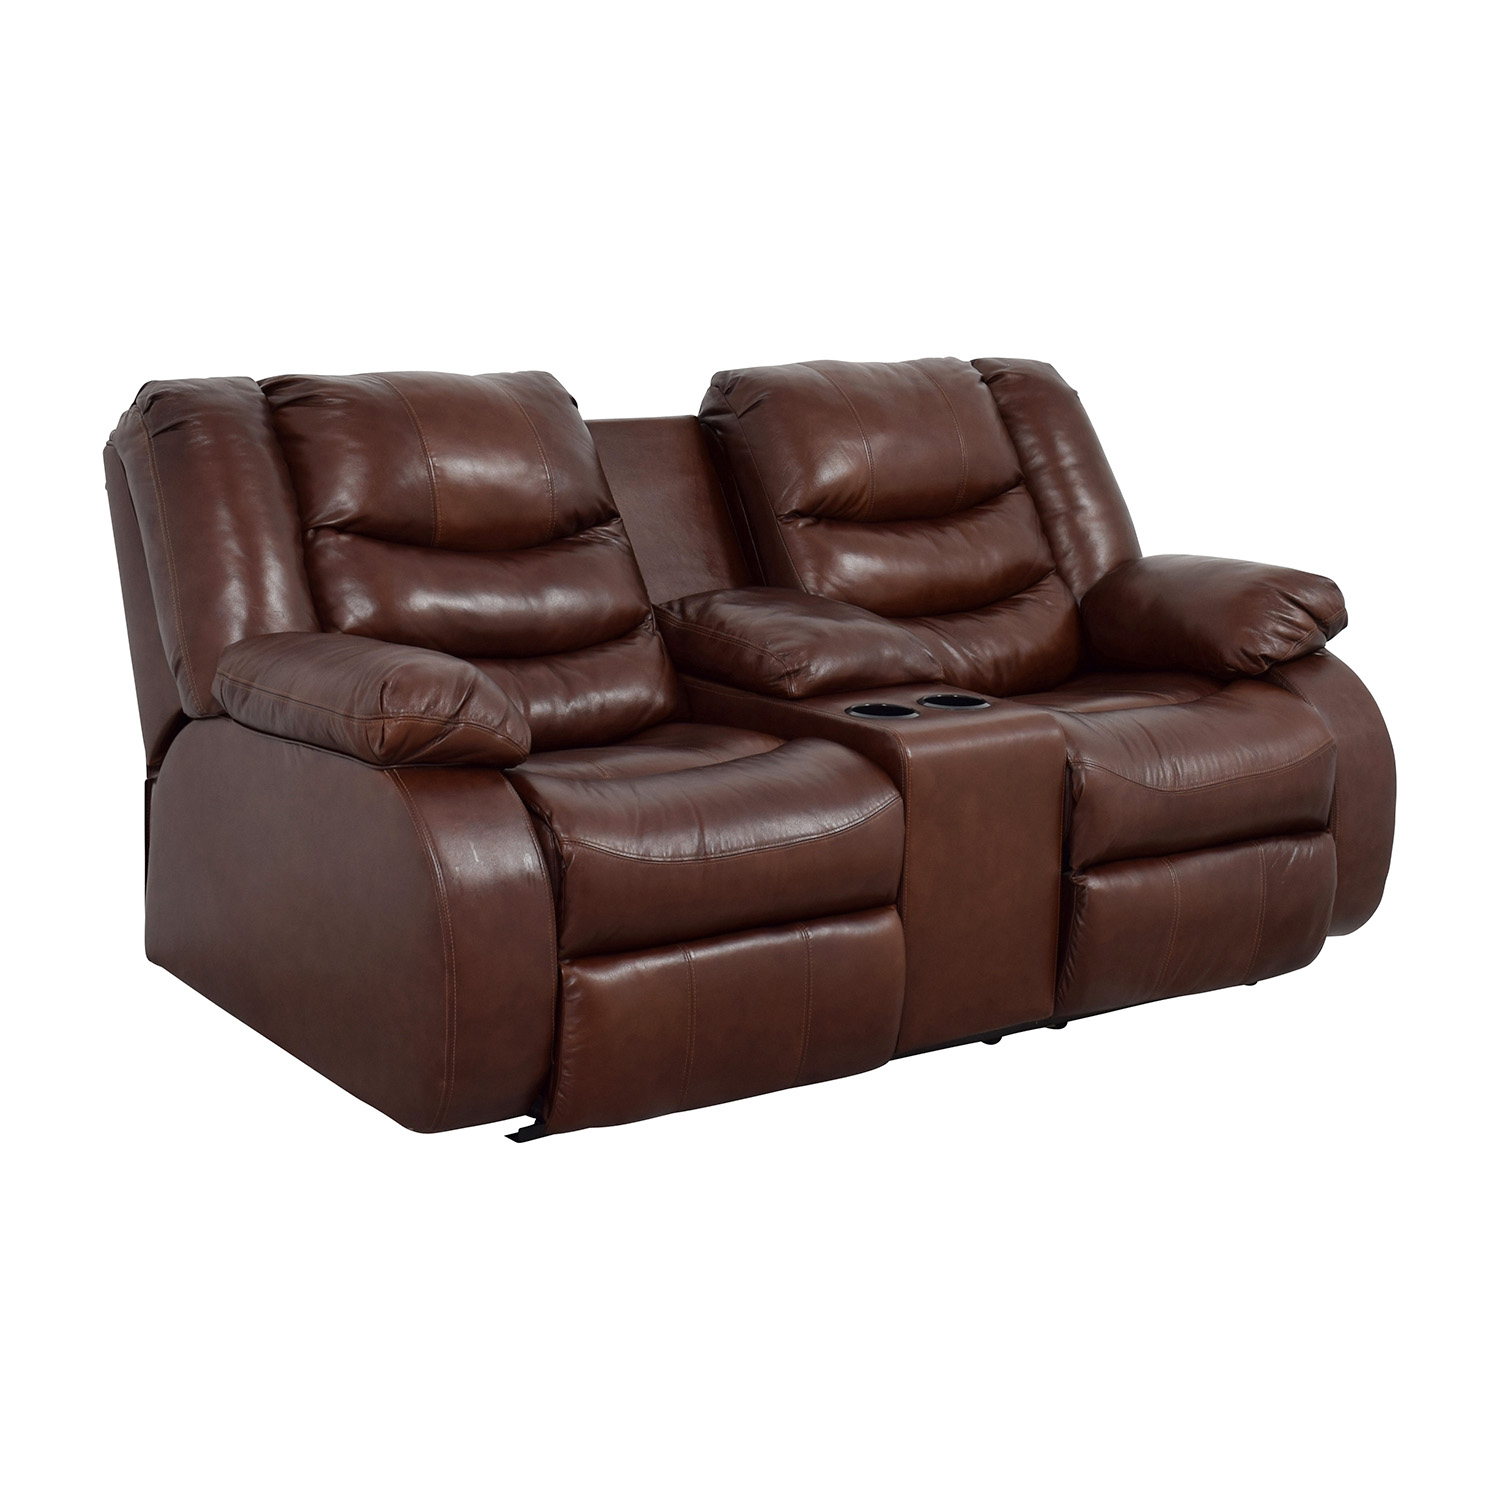 leather recliner chairs on sale chair parts suppliers 90 off ashley furniture brown